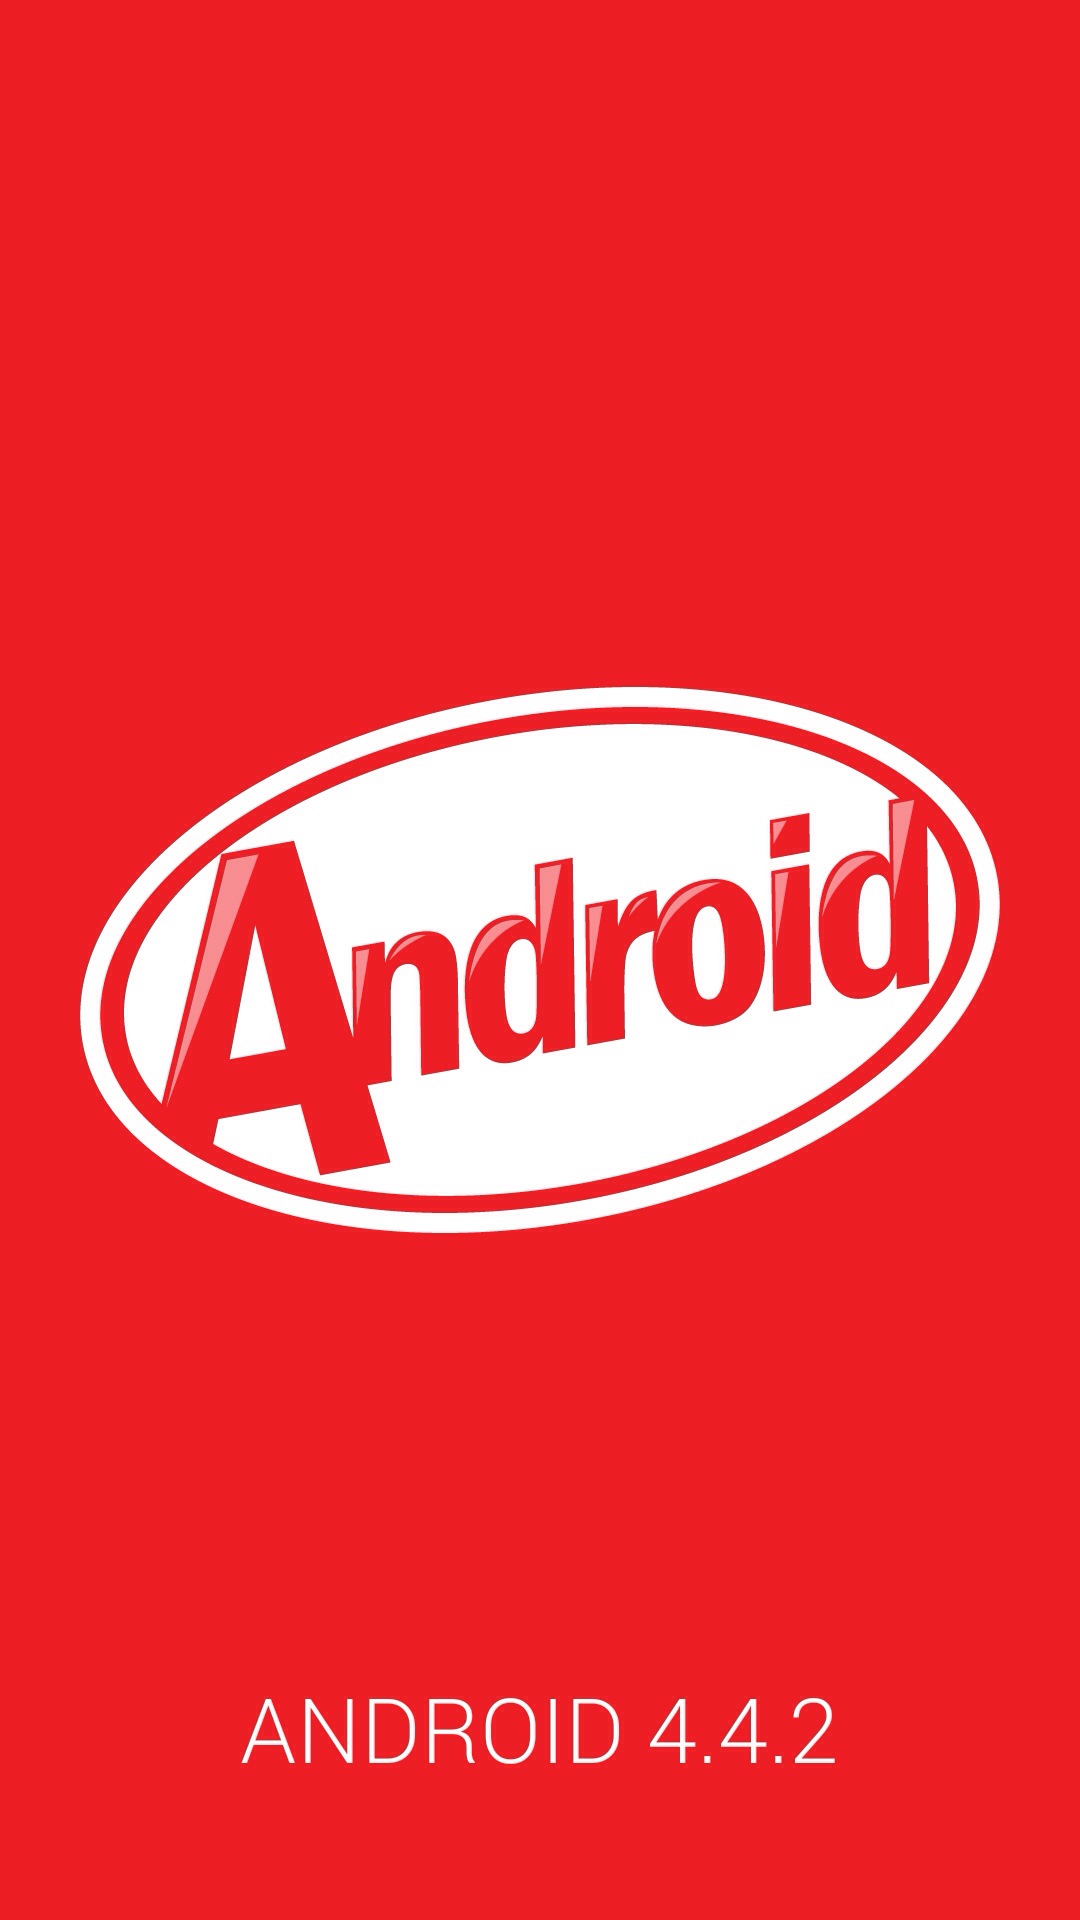 20140113 225458 - LEAKED : Galaxy Note 3 Android 4.4 KitKat Test firmware